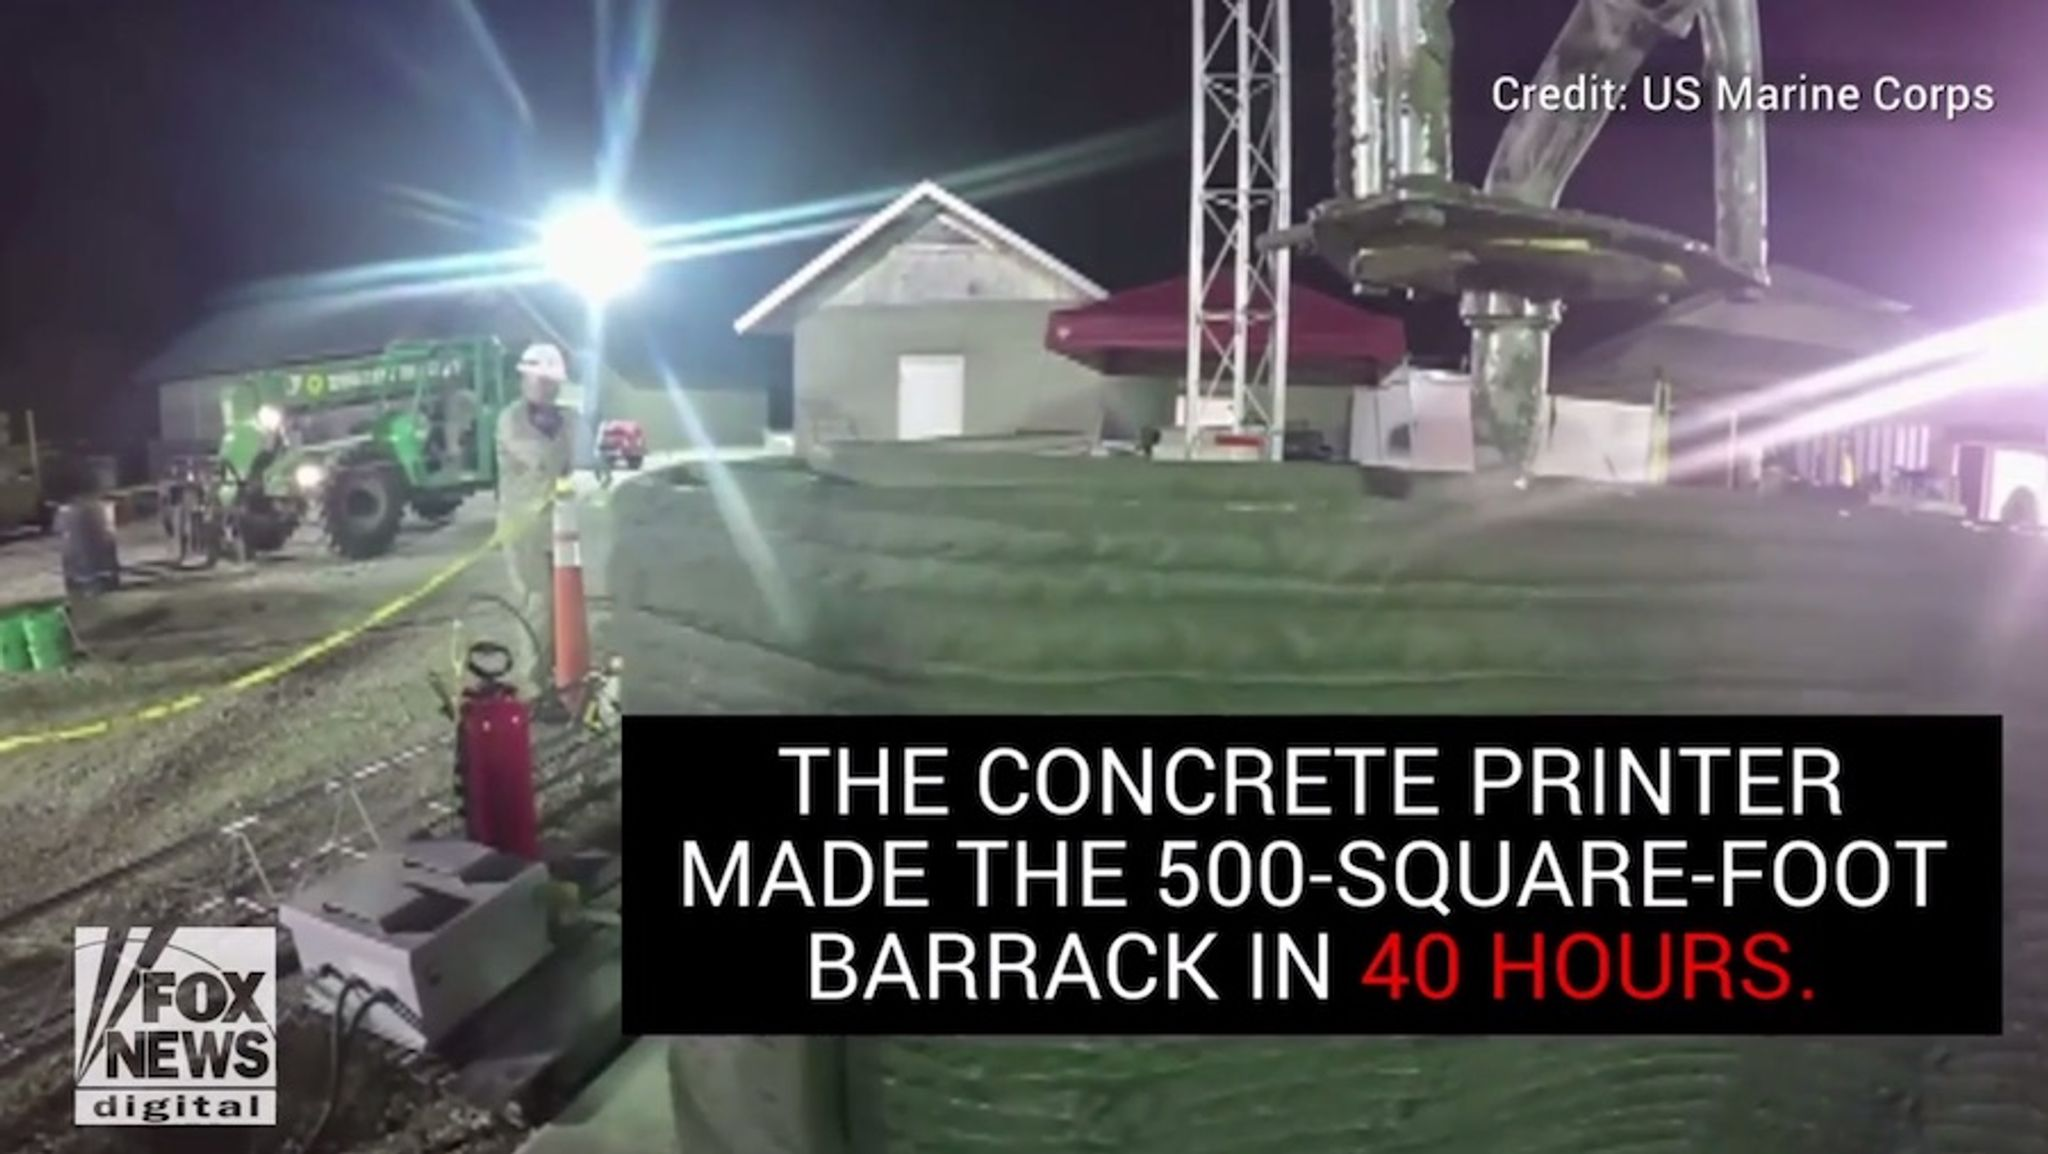 Marines make history with 3D-printing blitz: Concrete barracks built in 40 hours